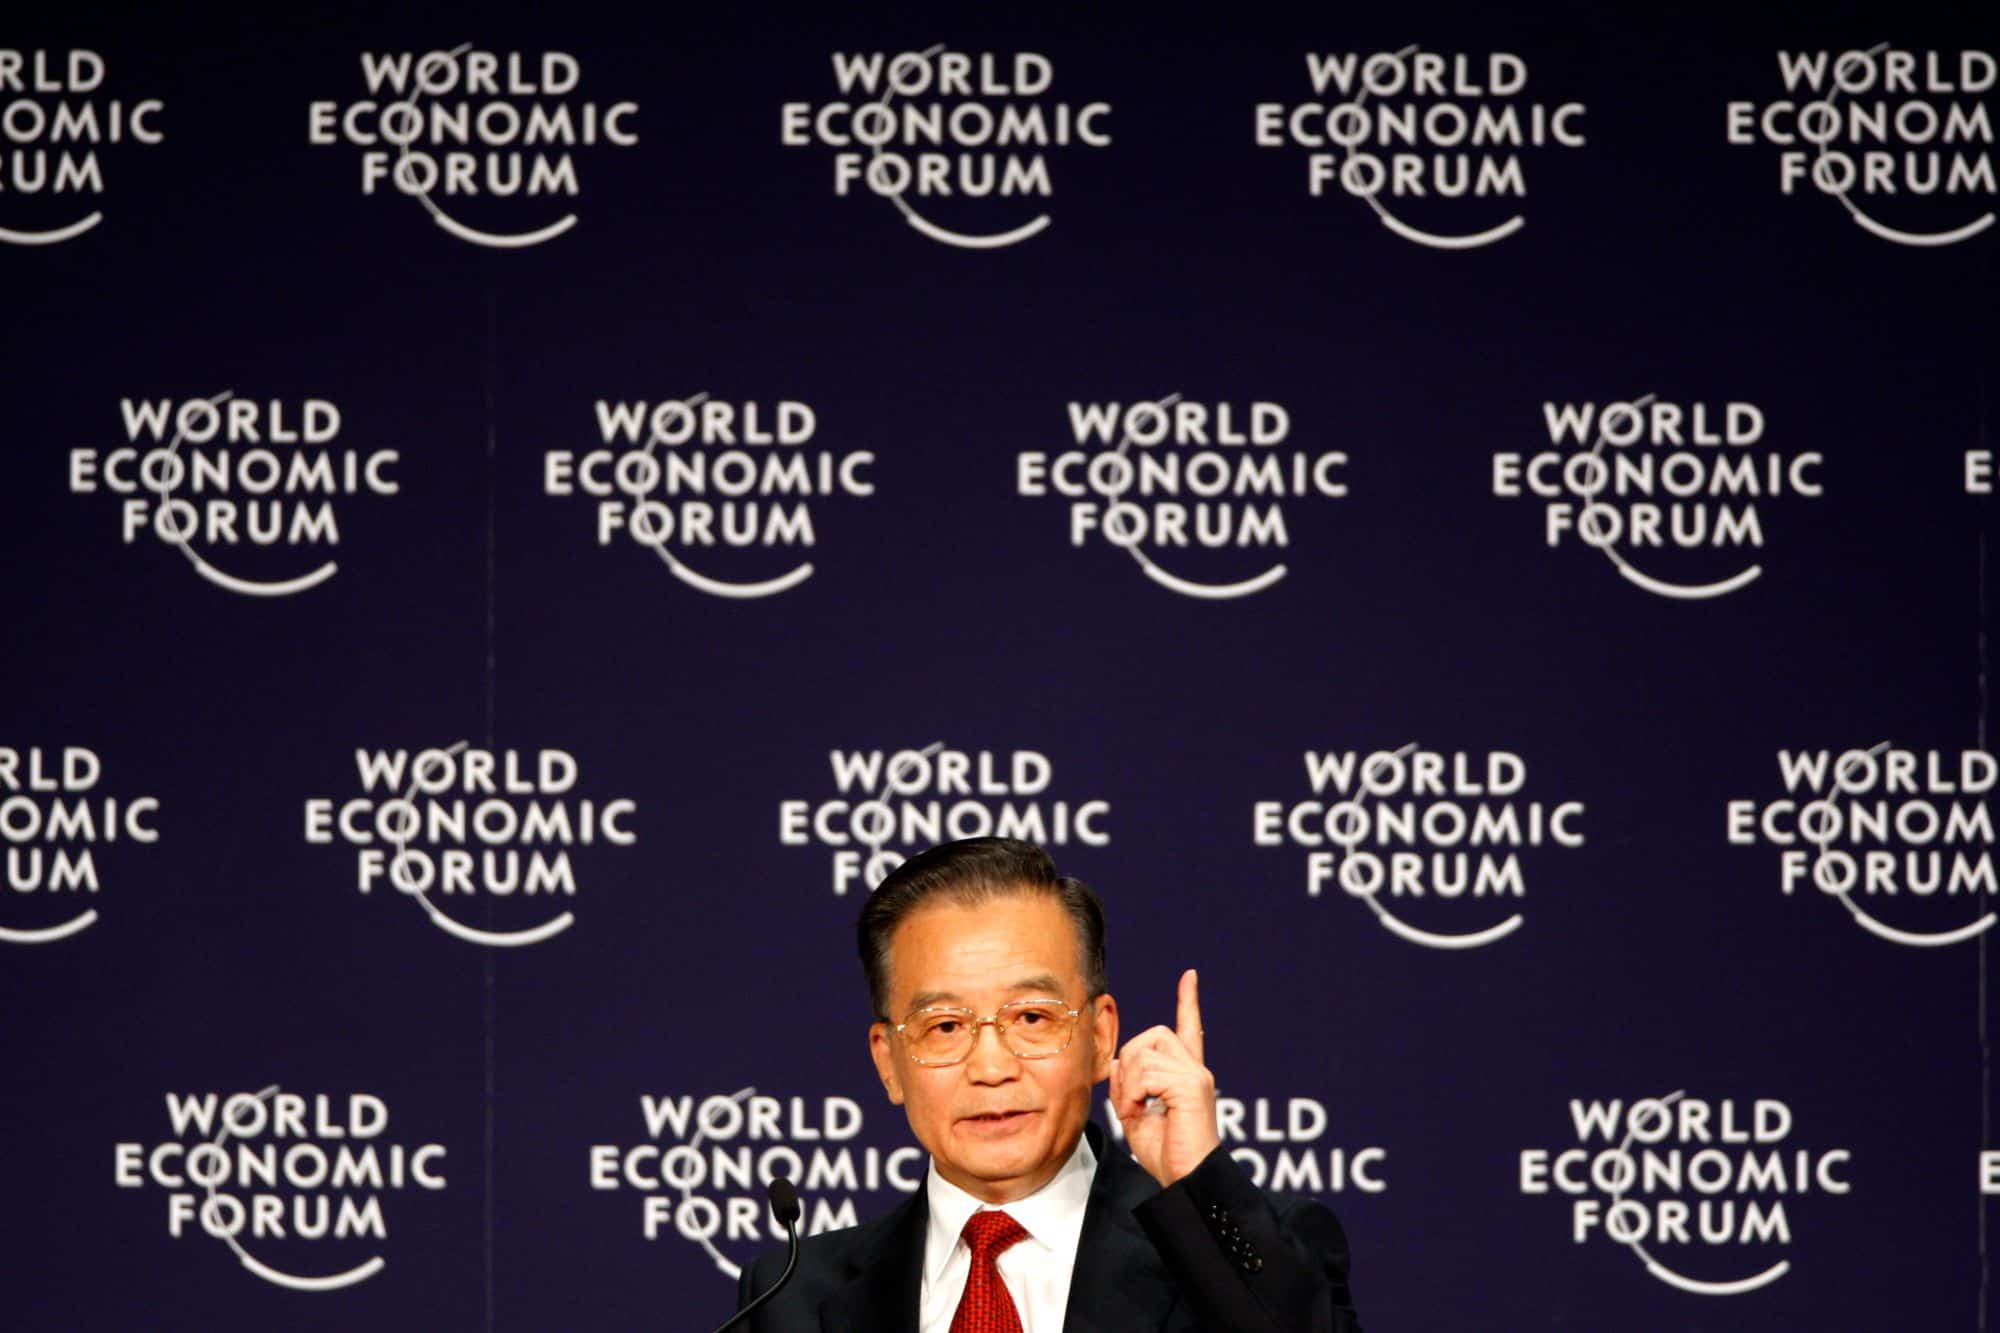 Chinese Premier Wen Jiabao speaks at the World Economic Forum as the global financial crisis spirals out of control, in September 2008.